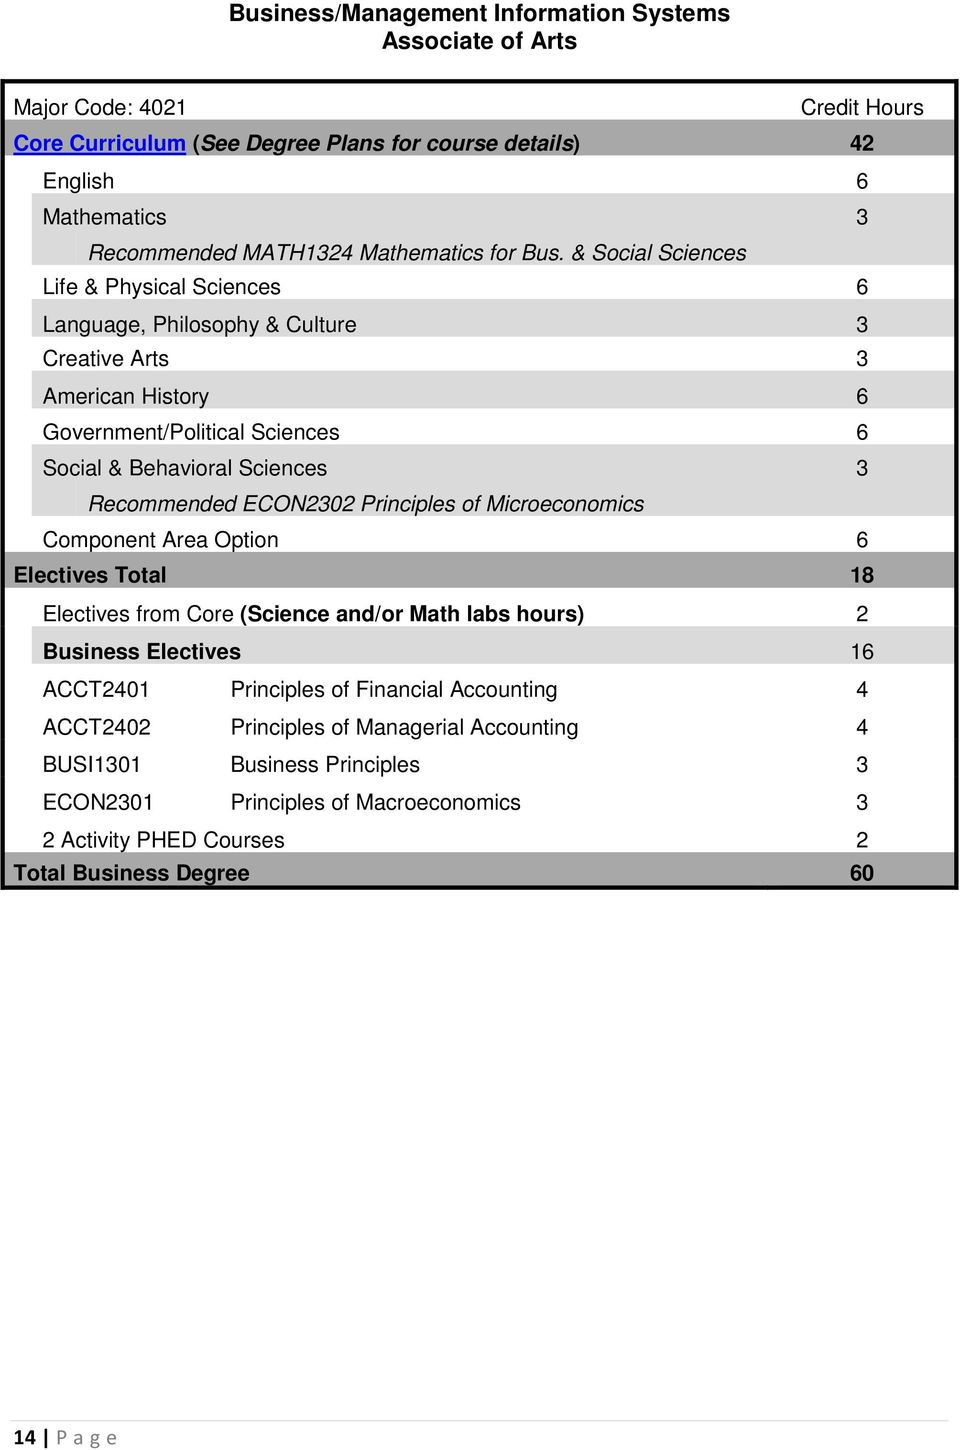 & Social Sciences Life & Physical Sciences 6 Language, Philosophy & Culture 3 Creative Arts 3 American History 6 Government/Political Sciences 6 Social & Behavioral Sciences 3 Recommended